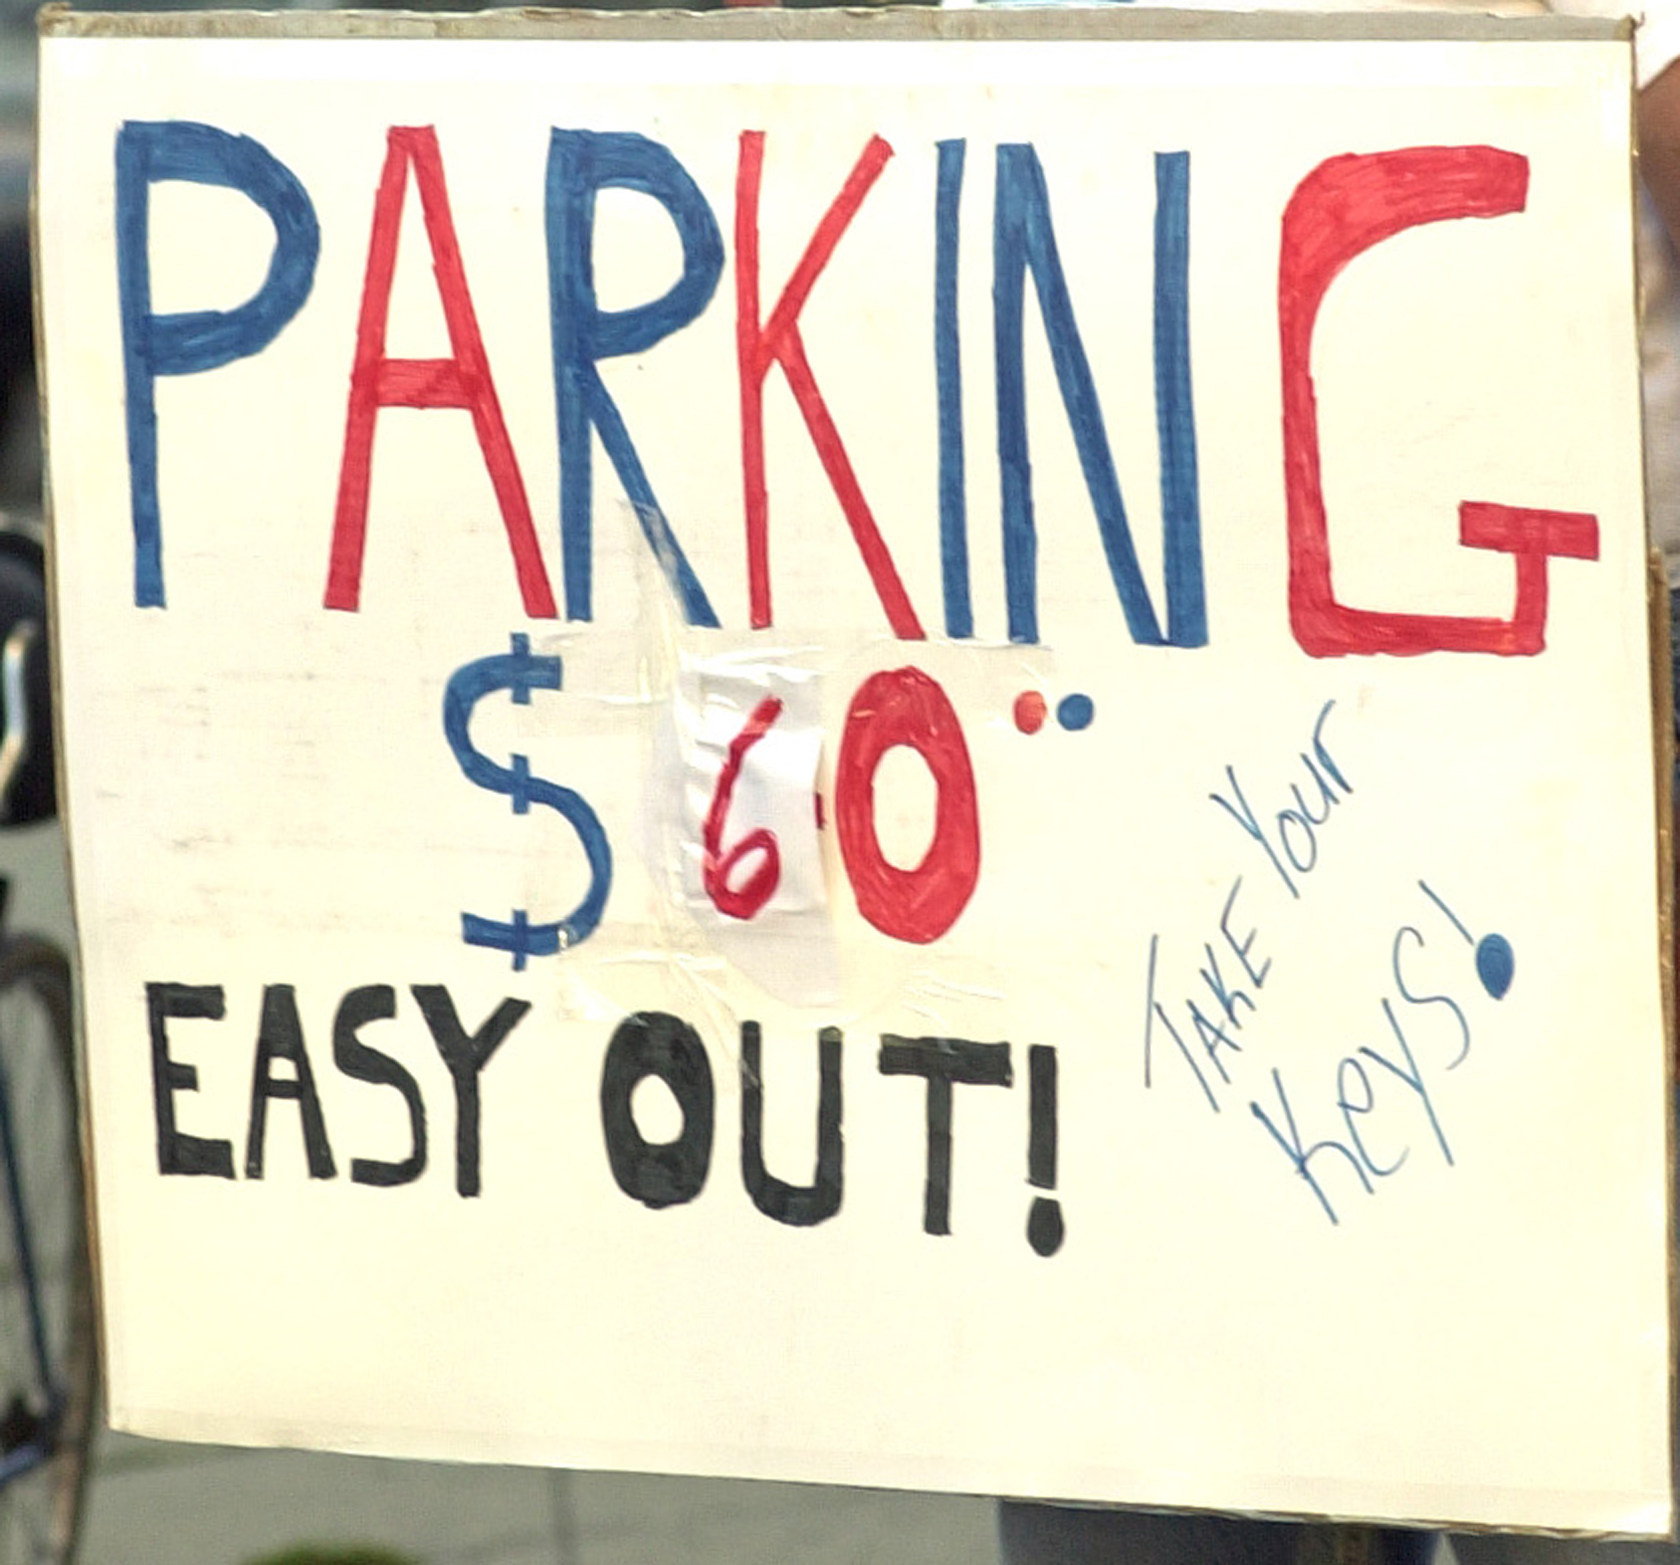 A sign advertising off-street parking for a Chicago Cubs game at Wrigley Field.